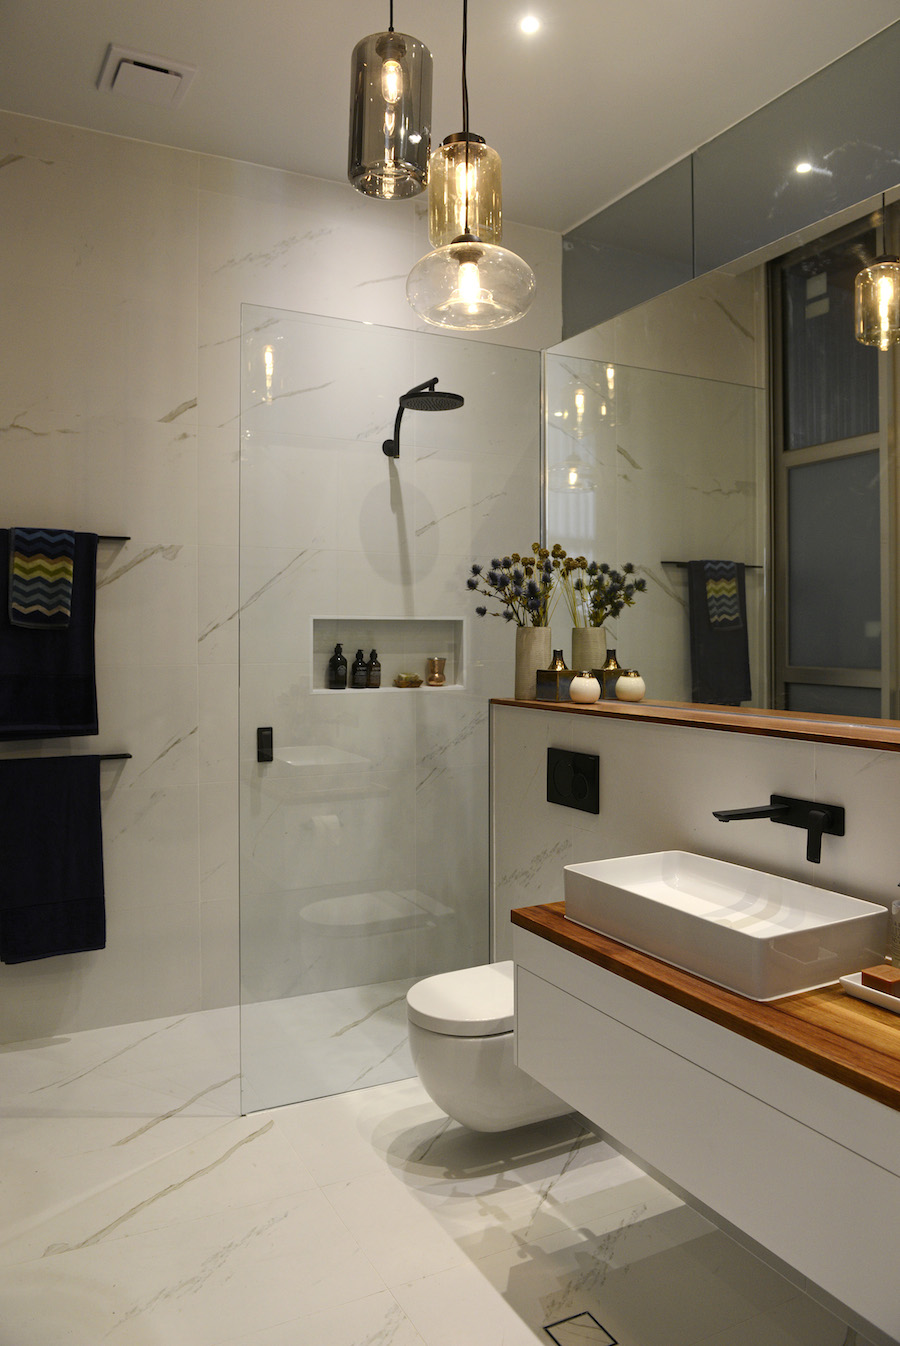 Need to decide on ensuite design and finishes - Images of bathroom vanity lighting ...